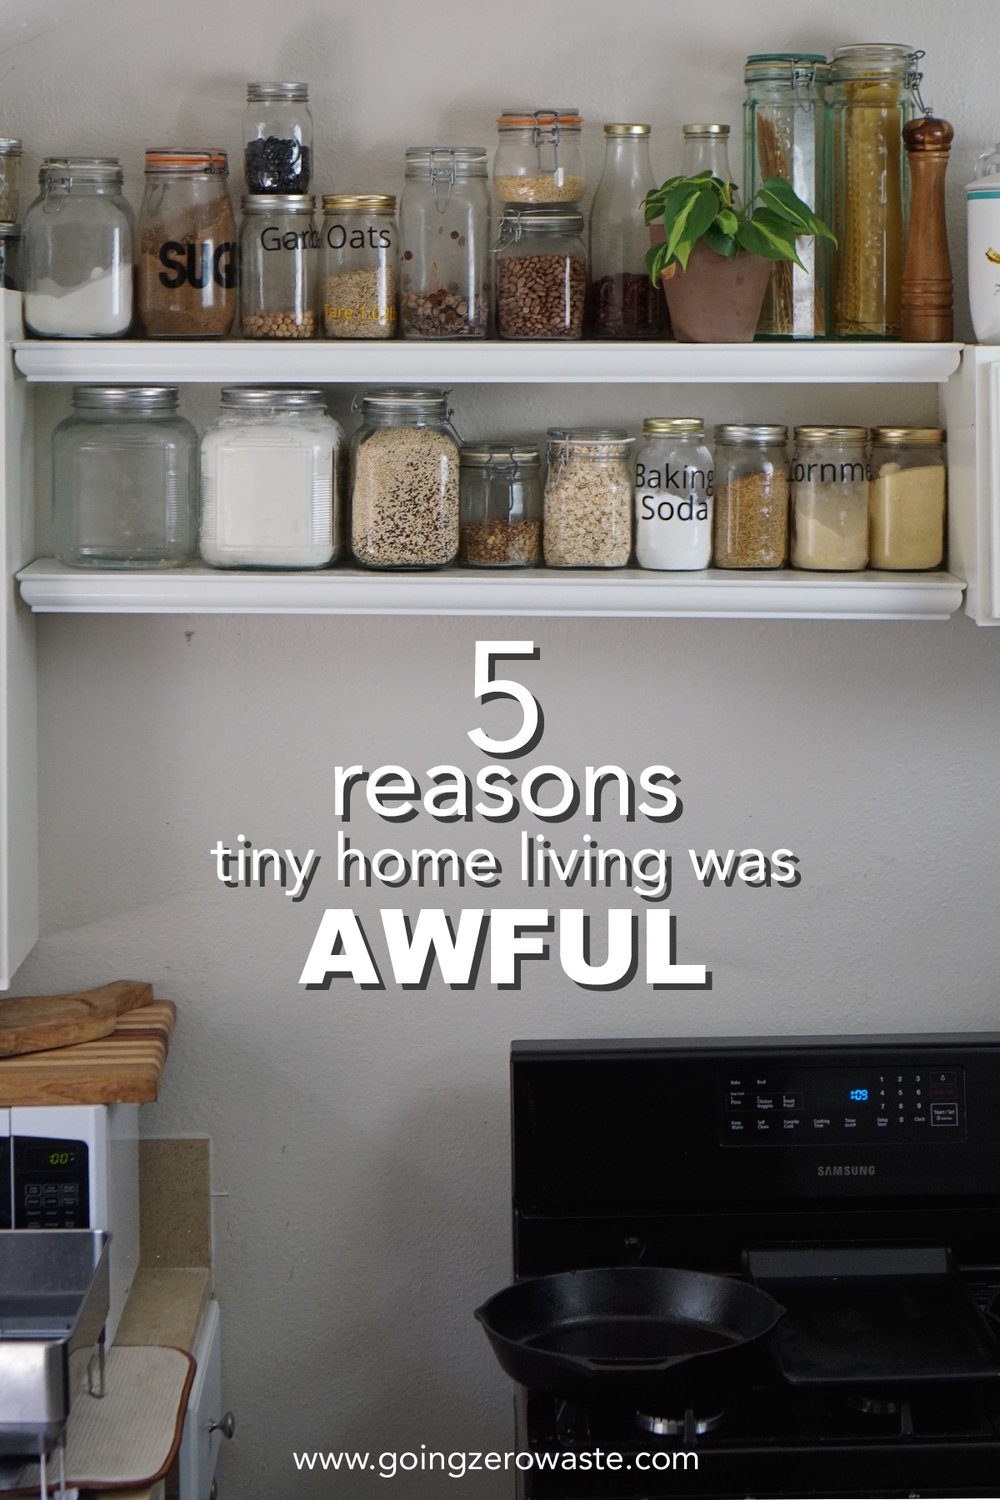 5 Reasons Tiny Home Living Was Awful from www.goingzerowaste.com #tinyhome #zerowaste #minimalliving